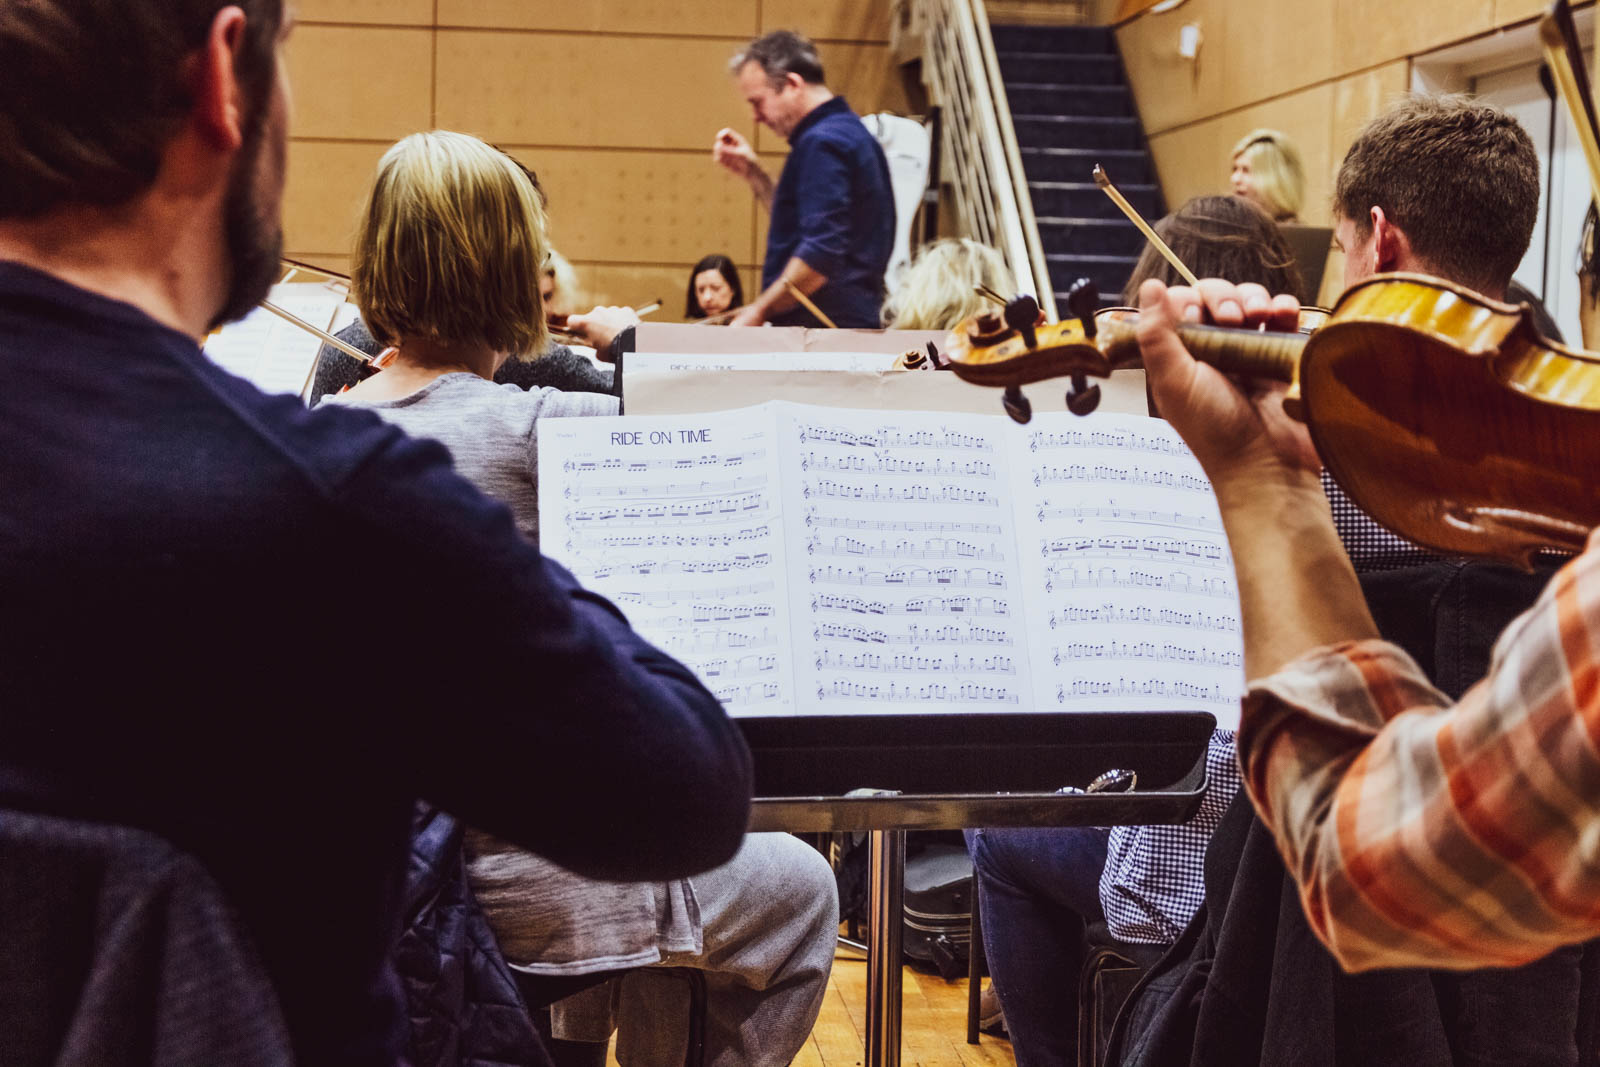 Gavin Murphy conducting rehearsals at RTÉ Radio Centre